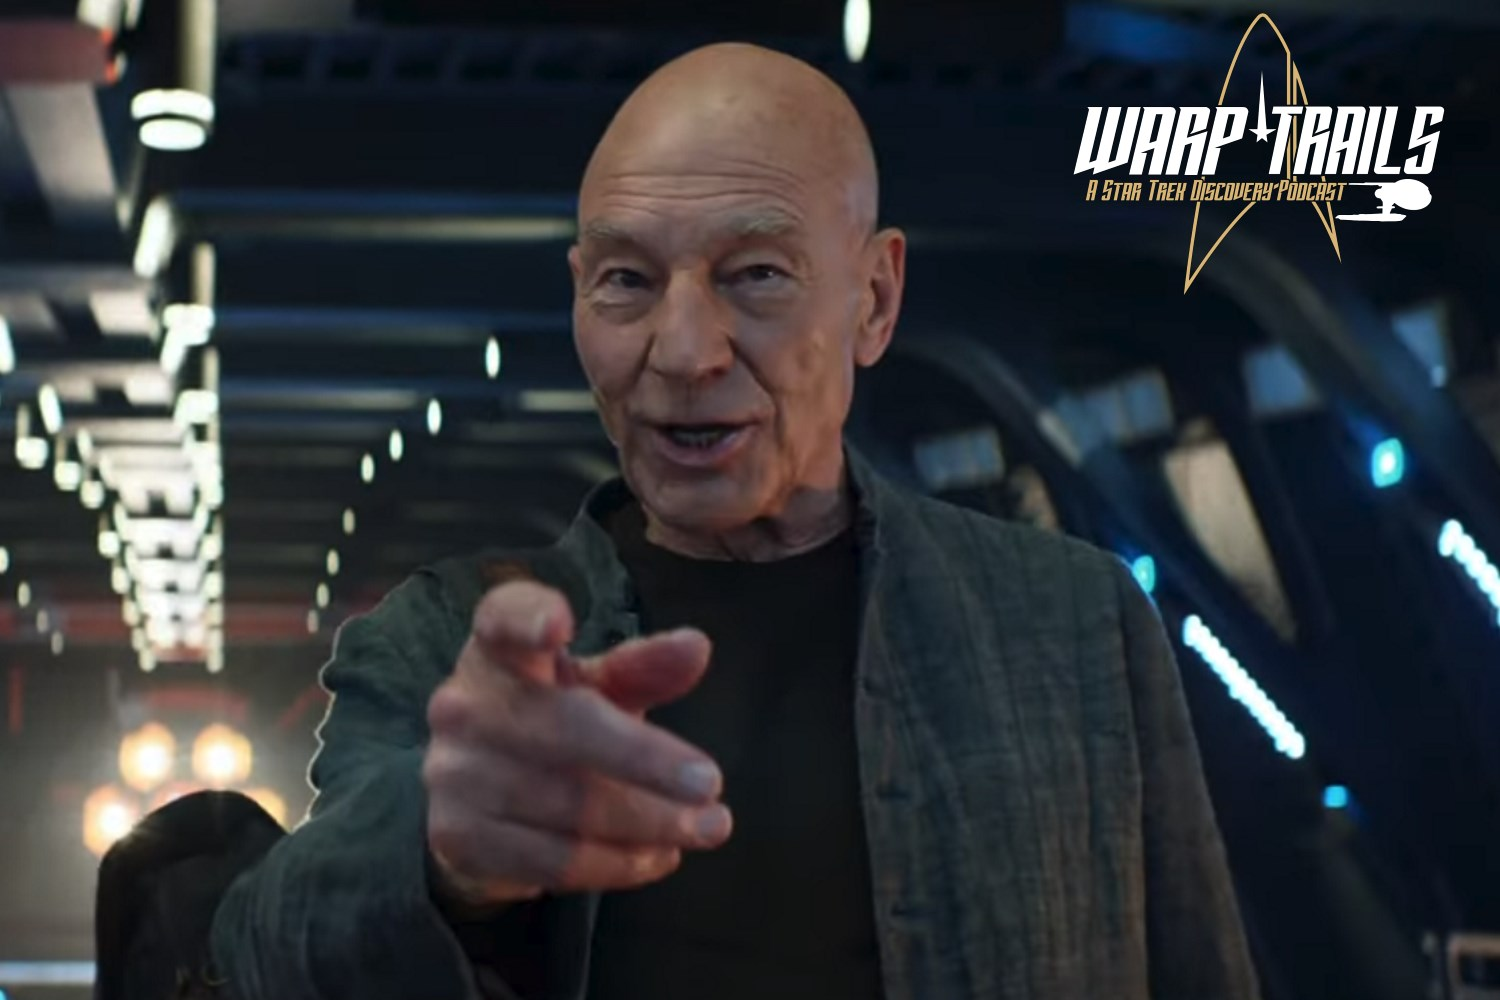 Warp Trails - Star Trek at Comic Con 2019 - Picard